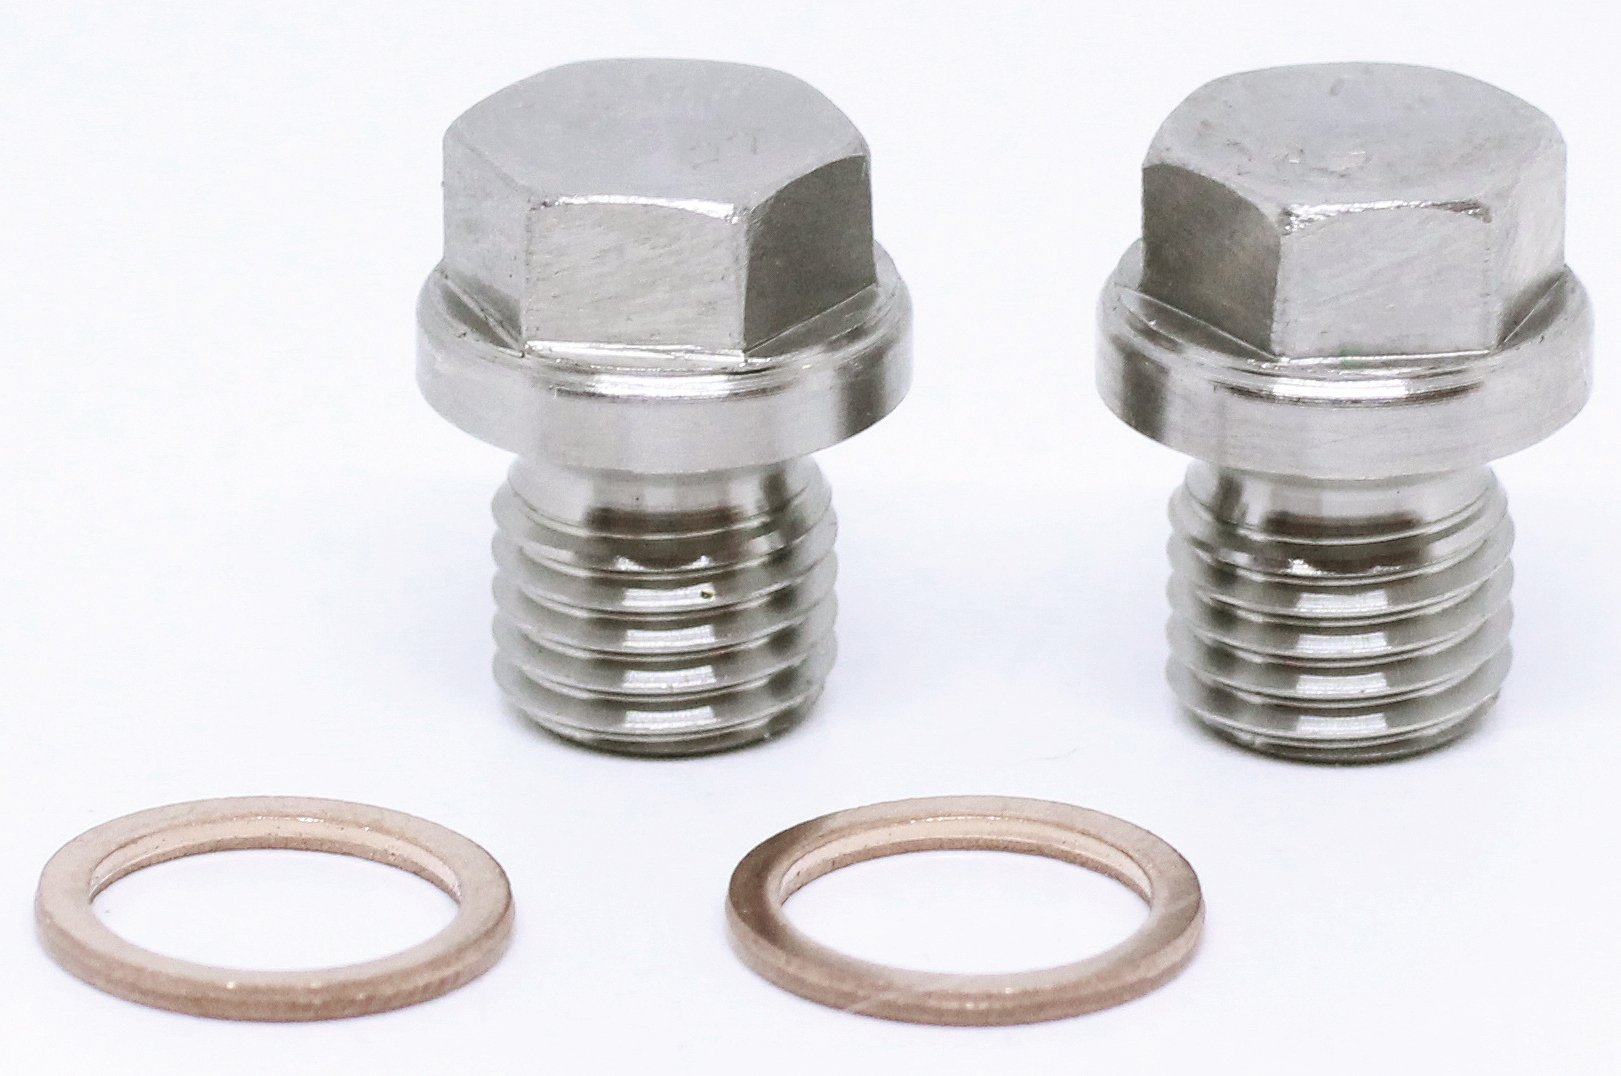 BelMetric (2pcs) M12X1.5 Flanged A2-50 Stainless Steel Hex Head Corrosion Resistant Plugs DIN 910 for Machinery and Fittings, Sealing Washers Included DP12X1.5HSS